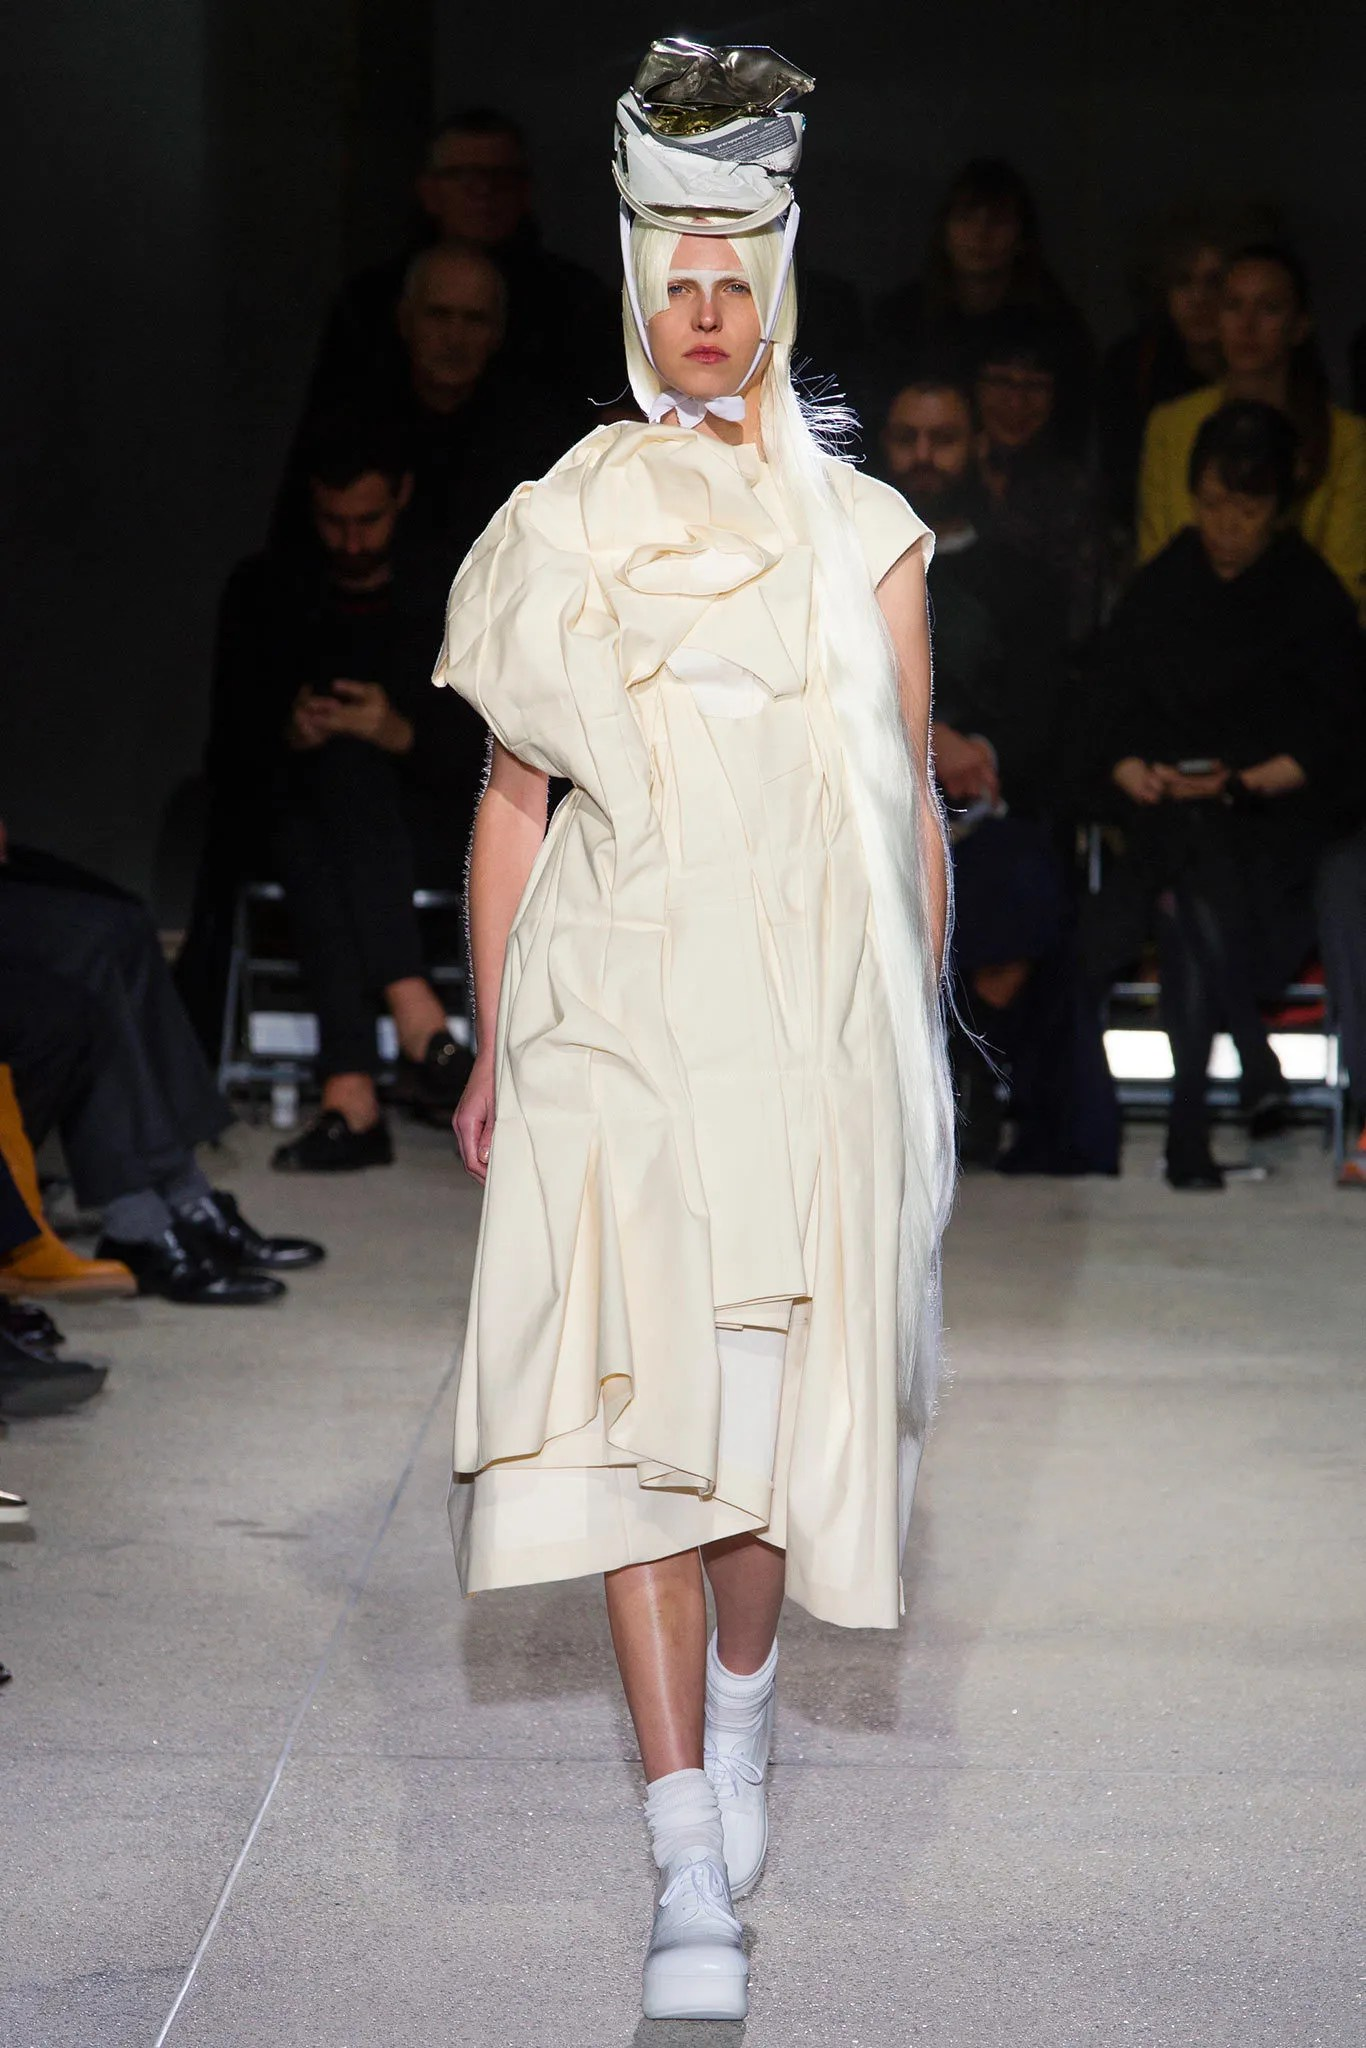 Comme des Garçons Spring 2013, clothing made from what looks like multiple toile pieces